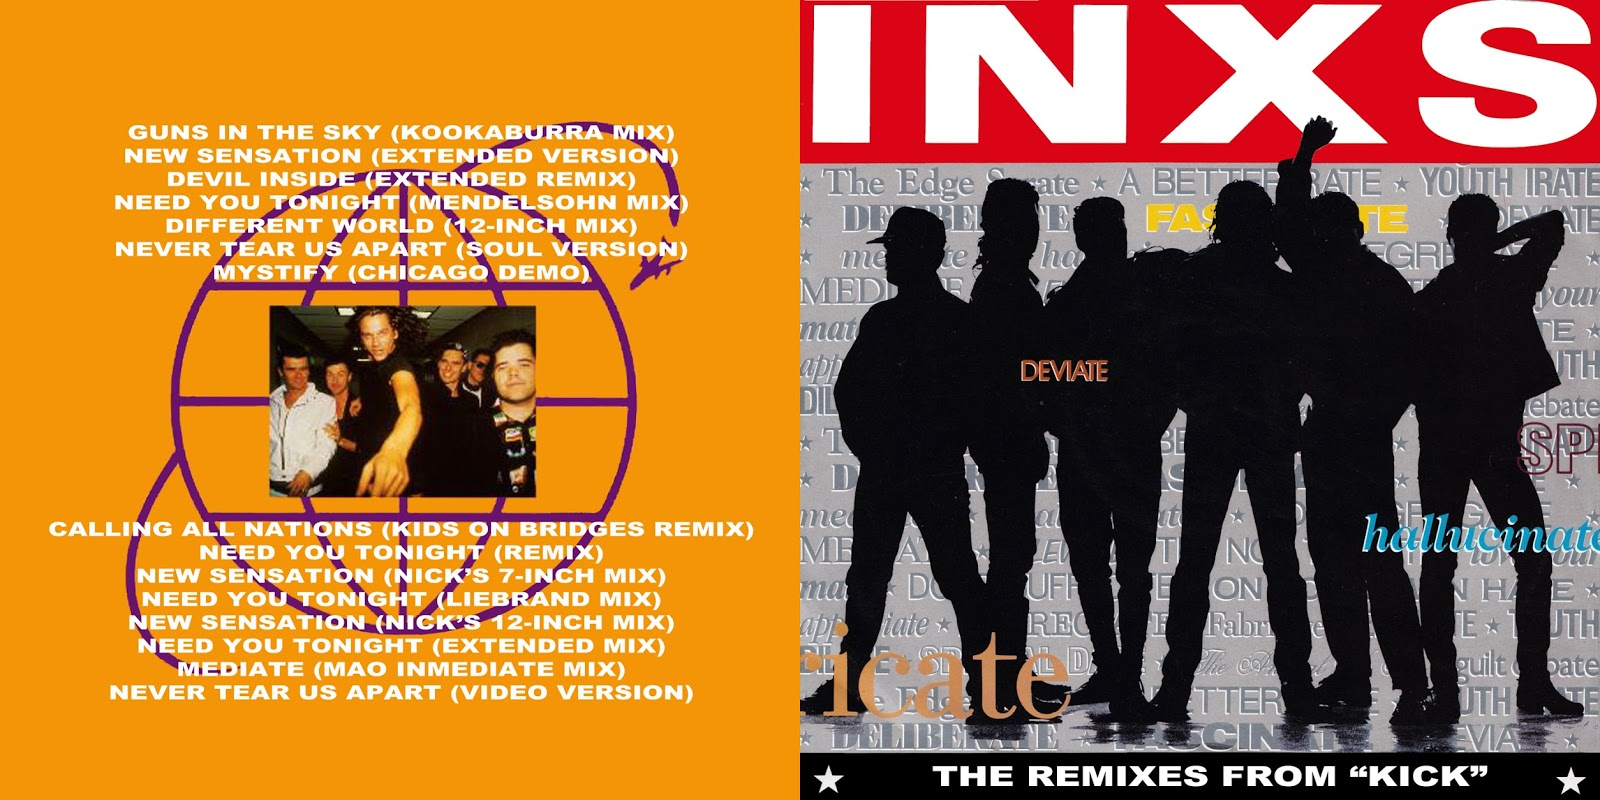 Inxs remix deep house